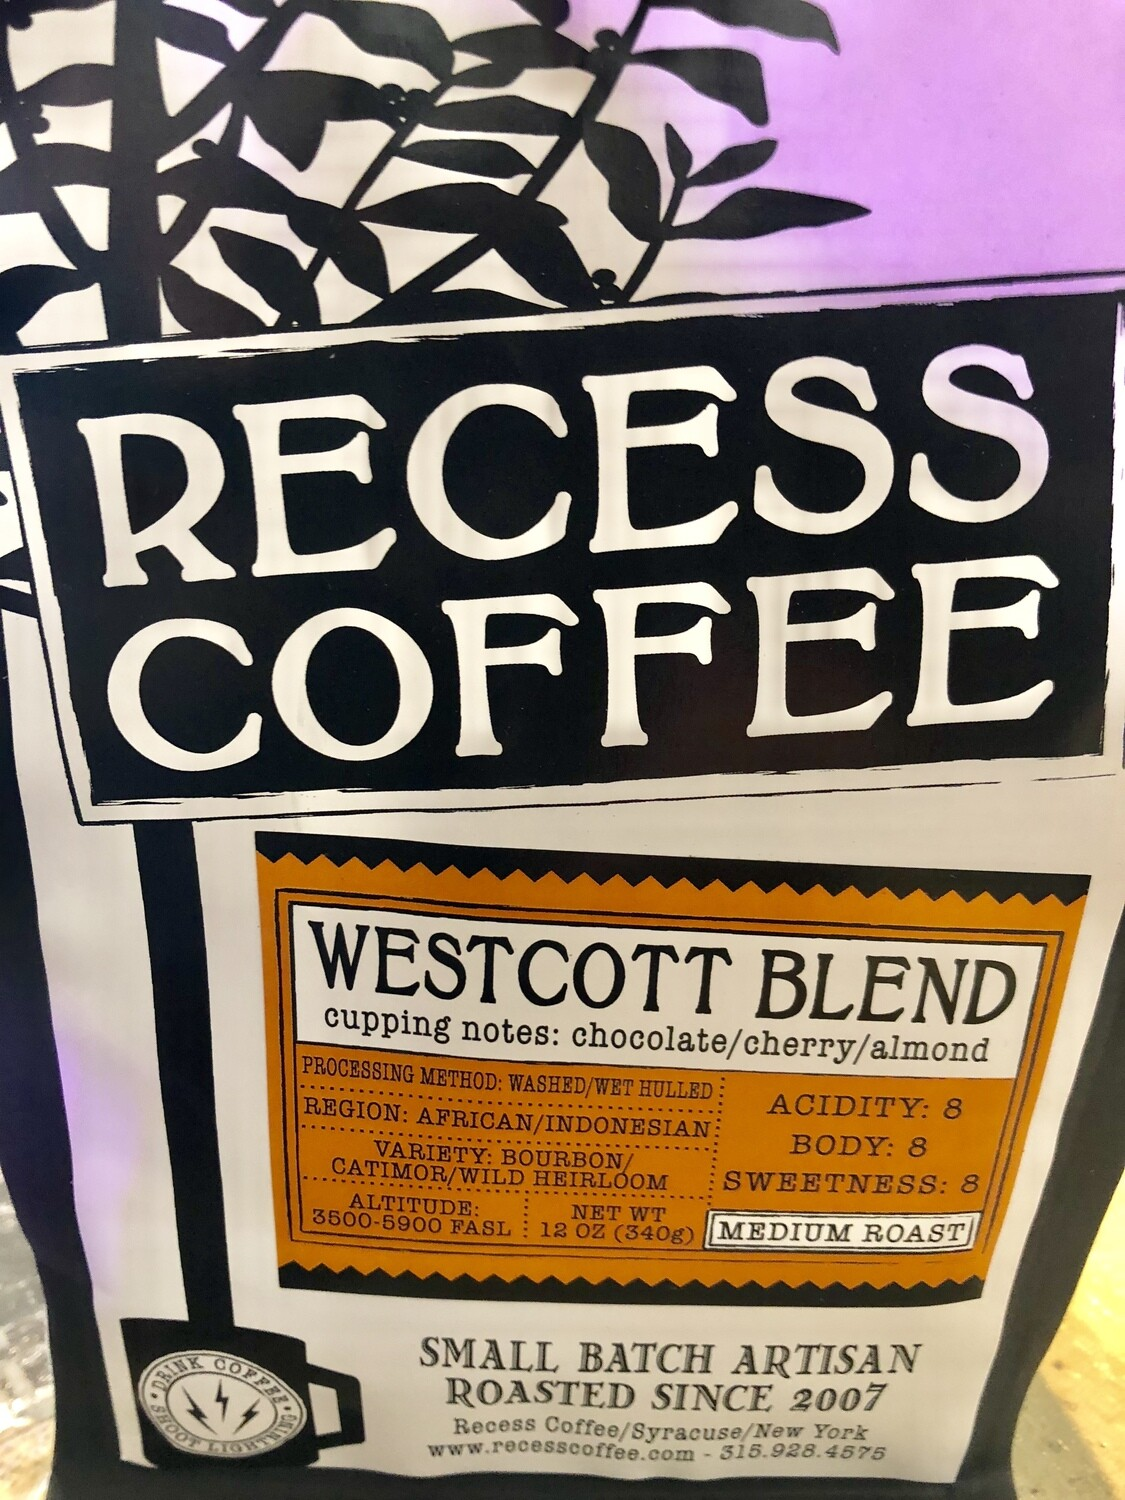 12 oz. Westcott Blend Coffee - Recess Coffee Roasters - Syracuse, NY